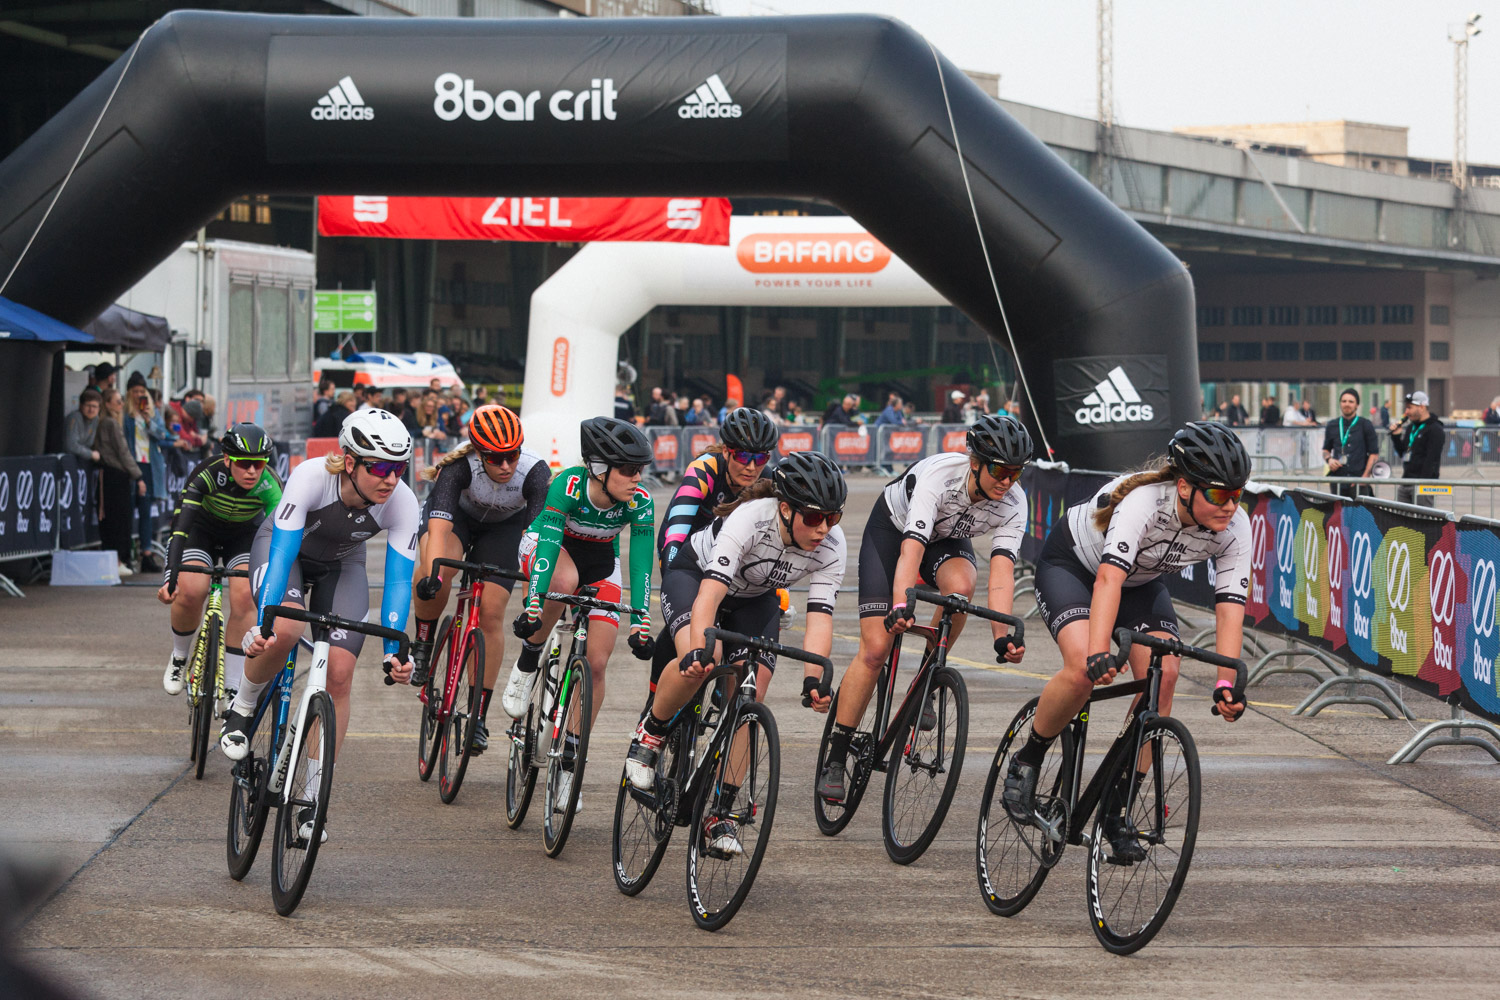 8barcrit 2018 women fixed gear race 19 - Schnell, schneller, 8bar crit 2018 - der Rennbericht!